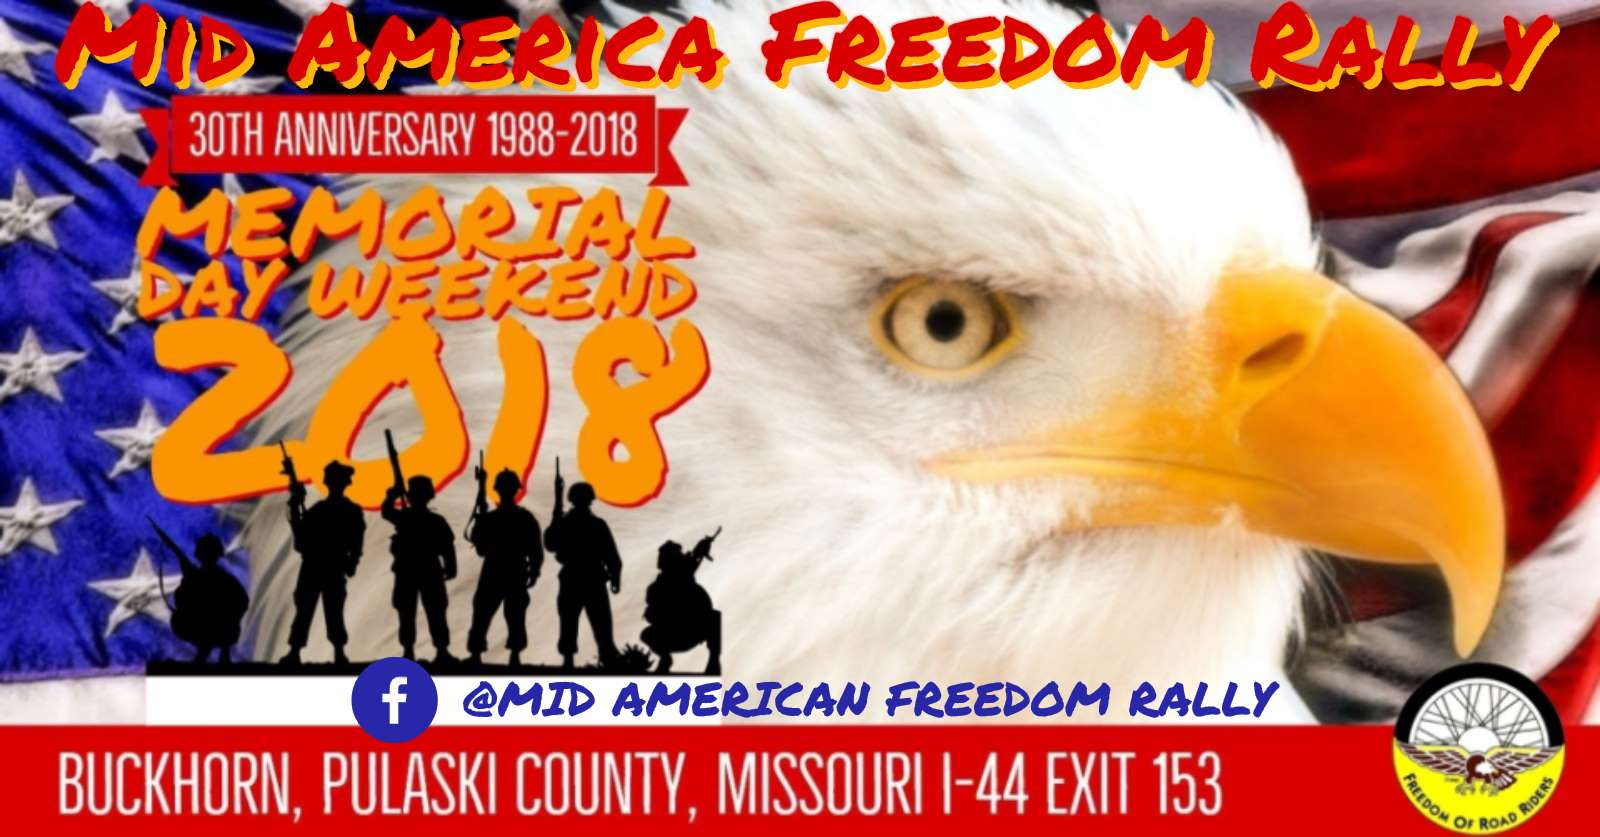 Mid America Freedom Rally has been a Memorial Day tradition for Midwest based motorcyclists for nearly three decades.